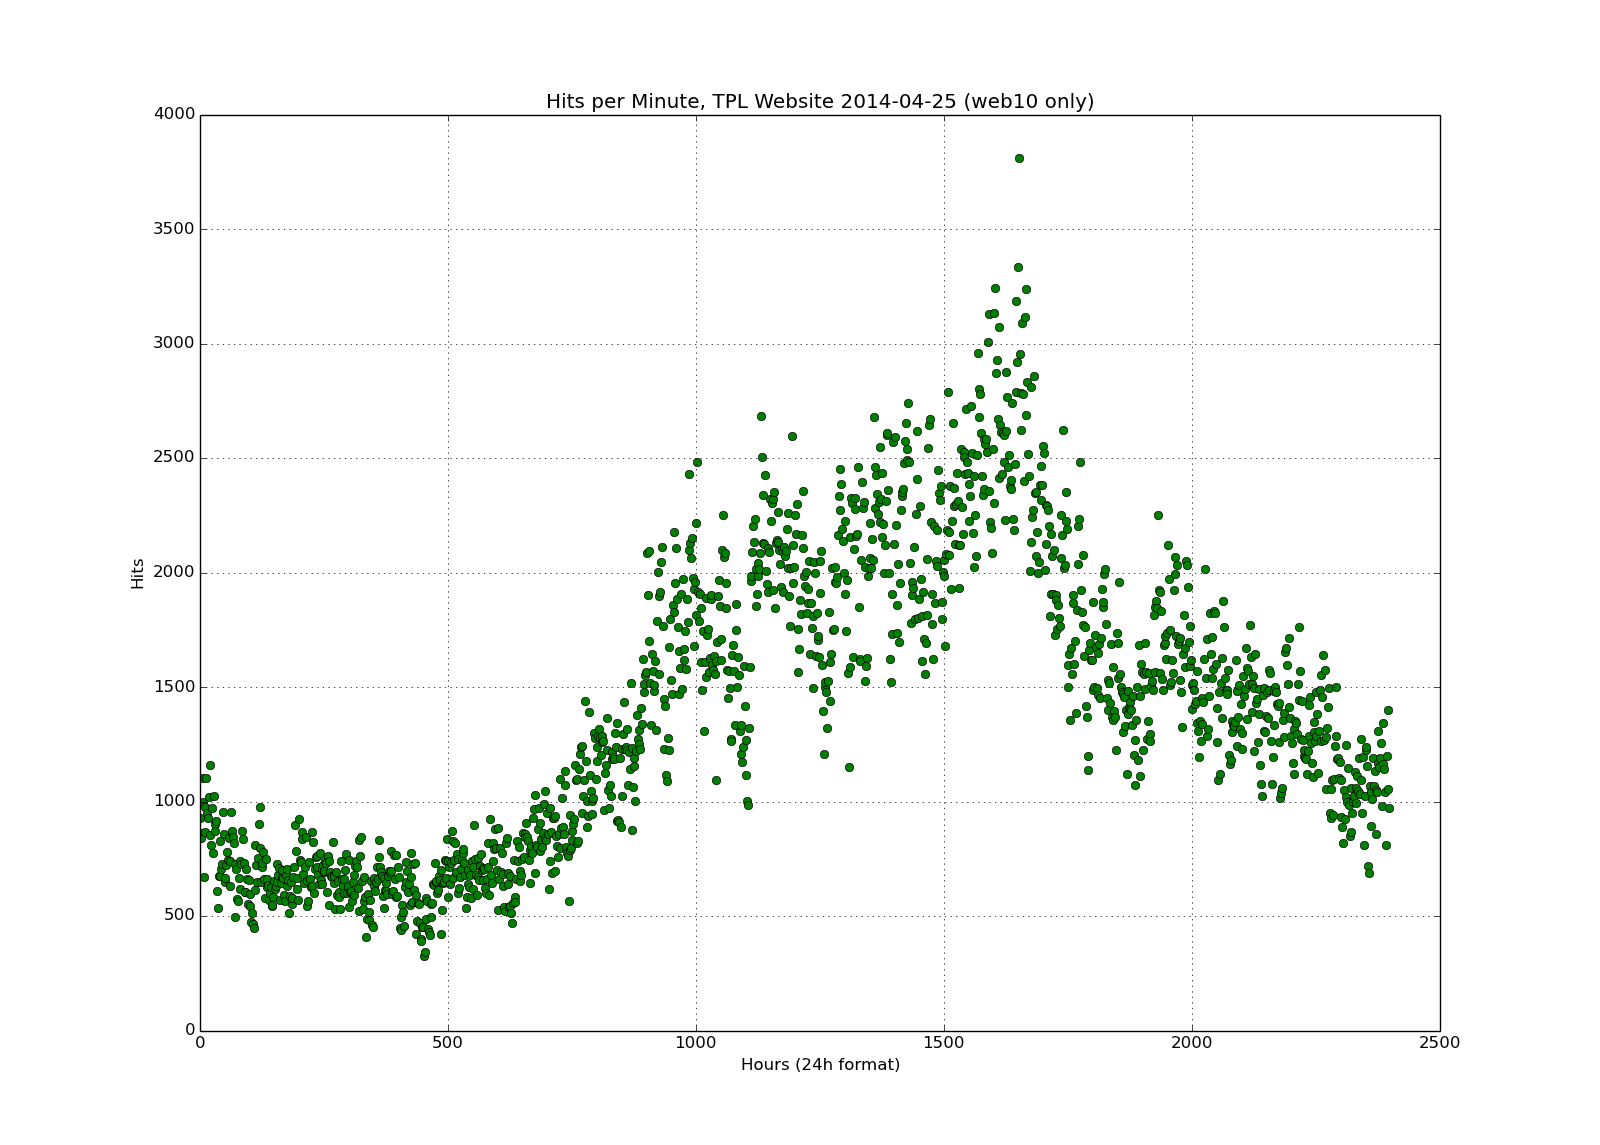 One day's dot plot showing hits per minute on a 25(!) hour scale